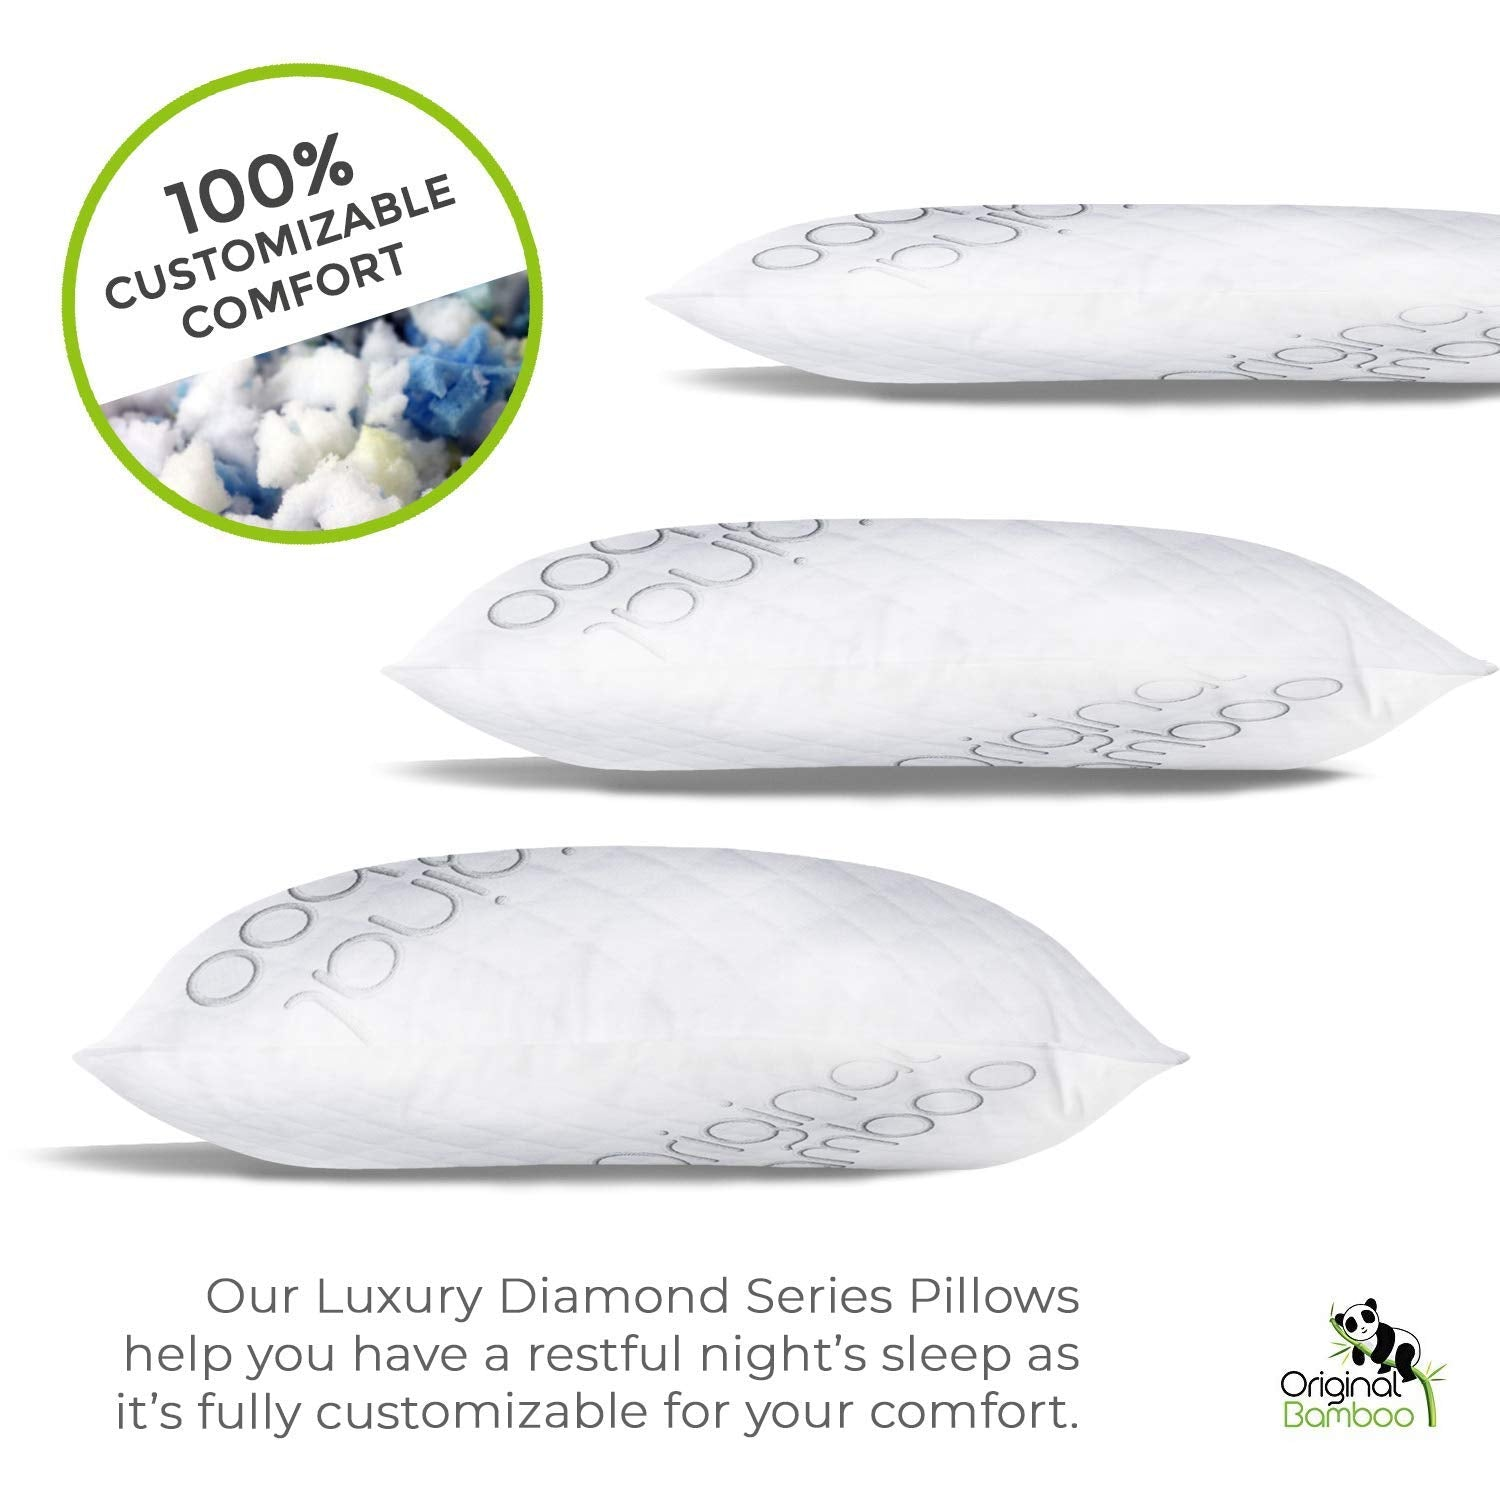 Premium Luxury Shredded Memory Foam Adjustable Pillow